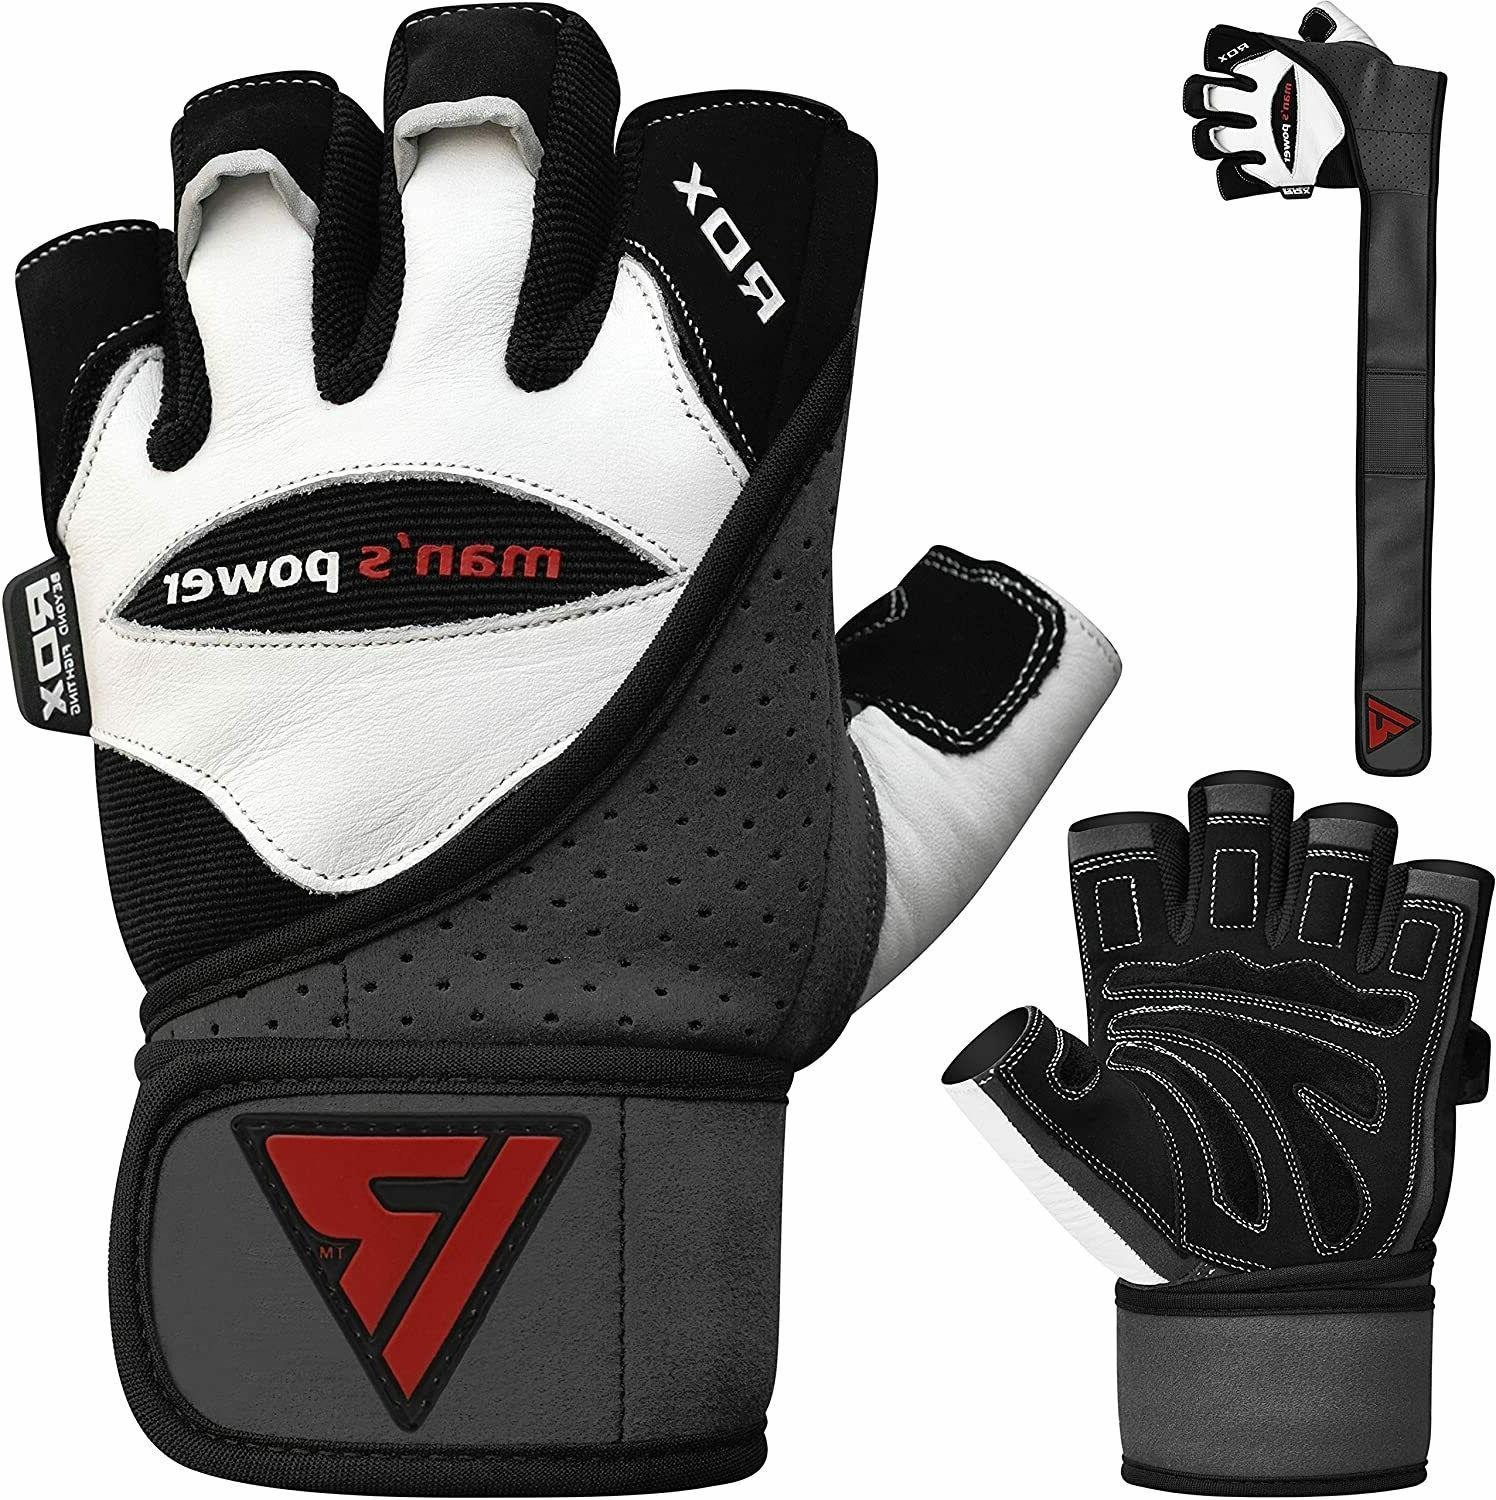 weight lifting gloves body building gym workout